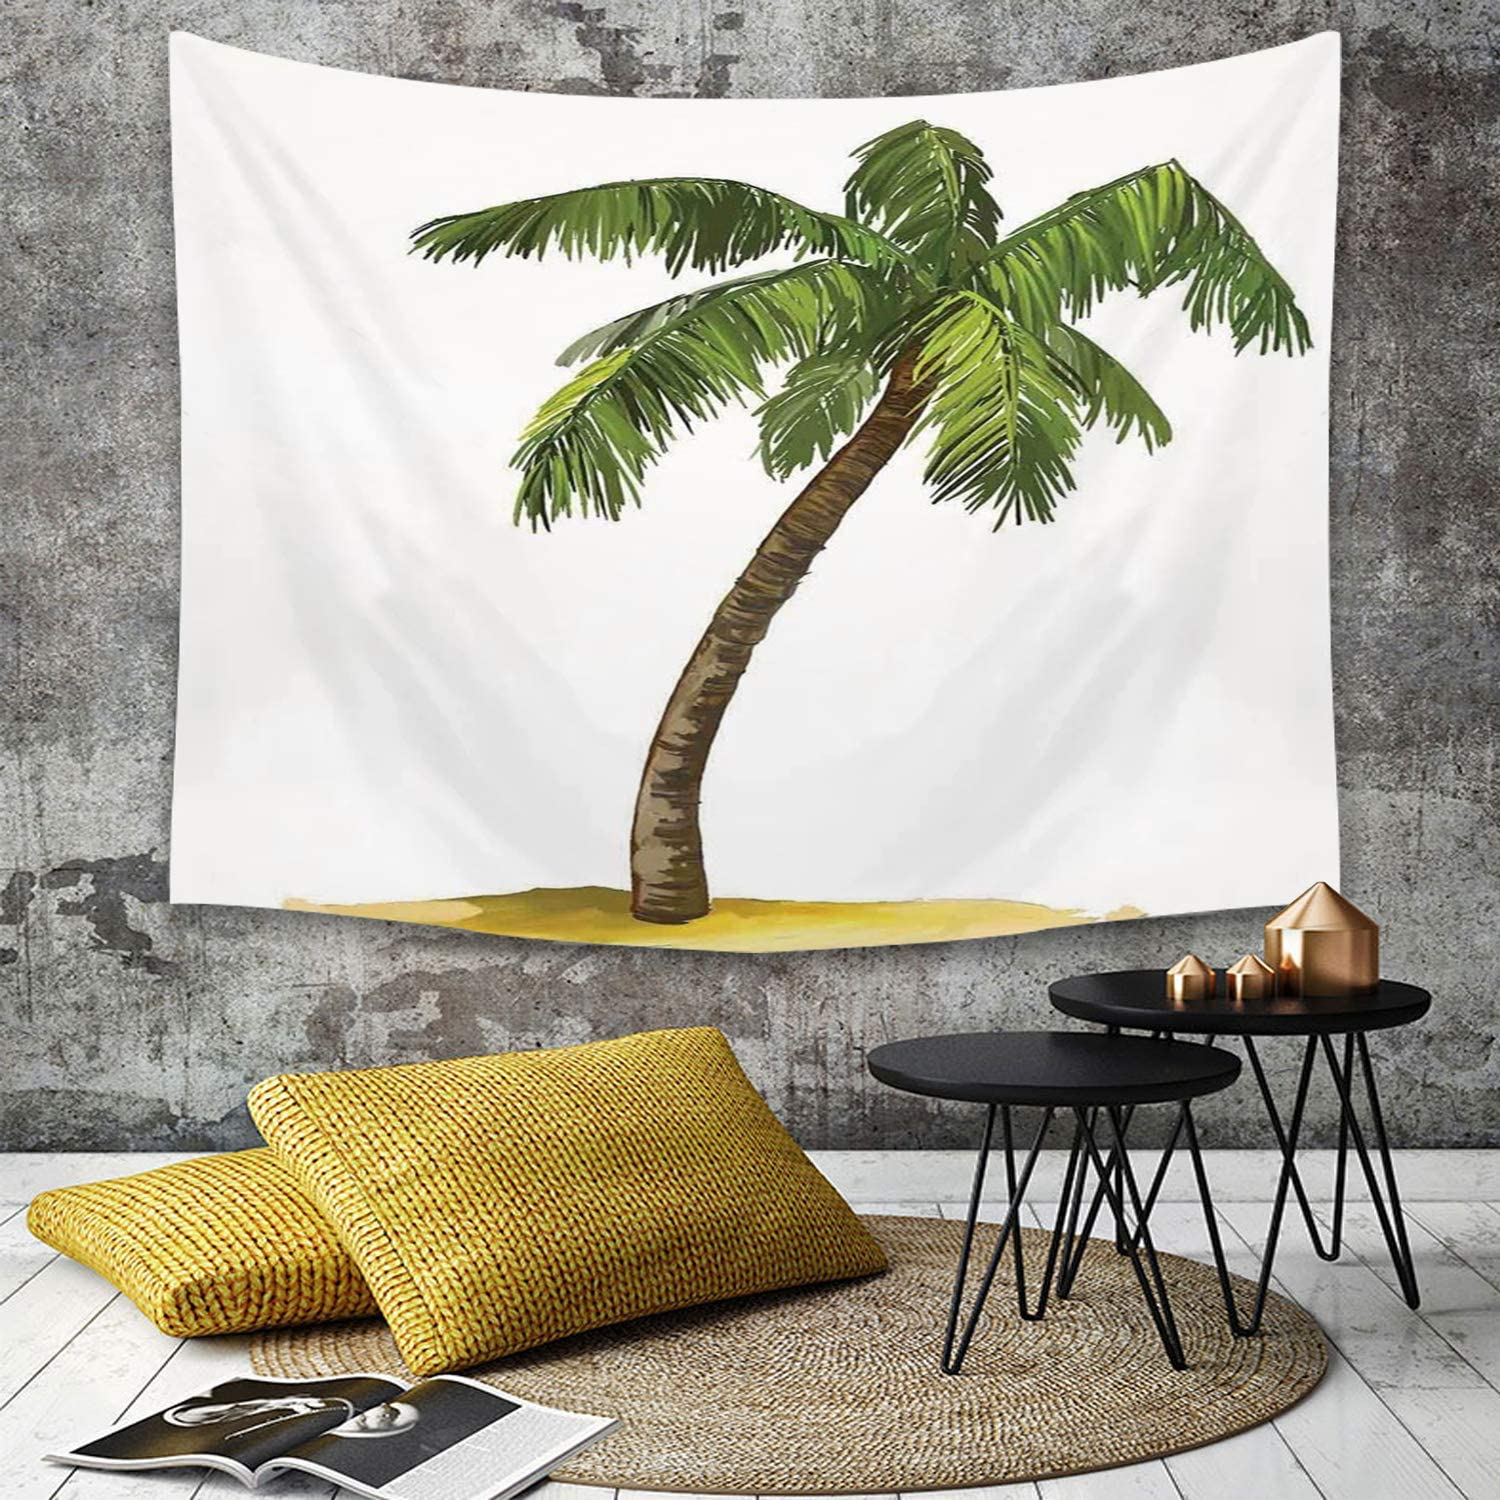 Yaoni Tapestry Wall Hanging Palm Tree Decor Cartoon Palms Image Tropical Plant And Sand Serenity Nature Foliage Print Green Brown Home Decor Art Tapestries For Bedroom Living Room Dorm Apartment Amazon Co Uk Kitchen Home